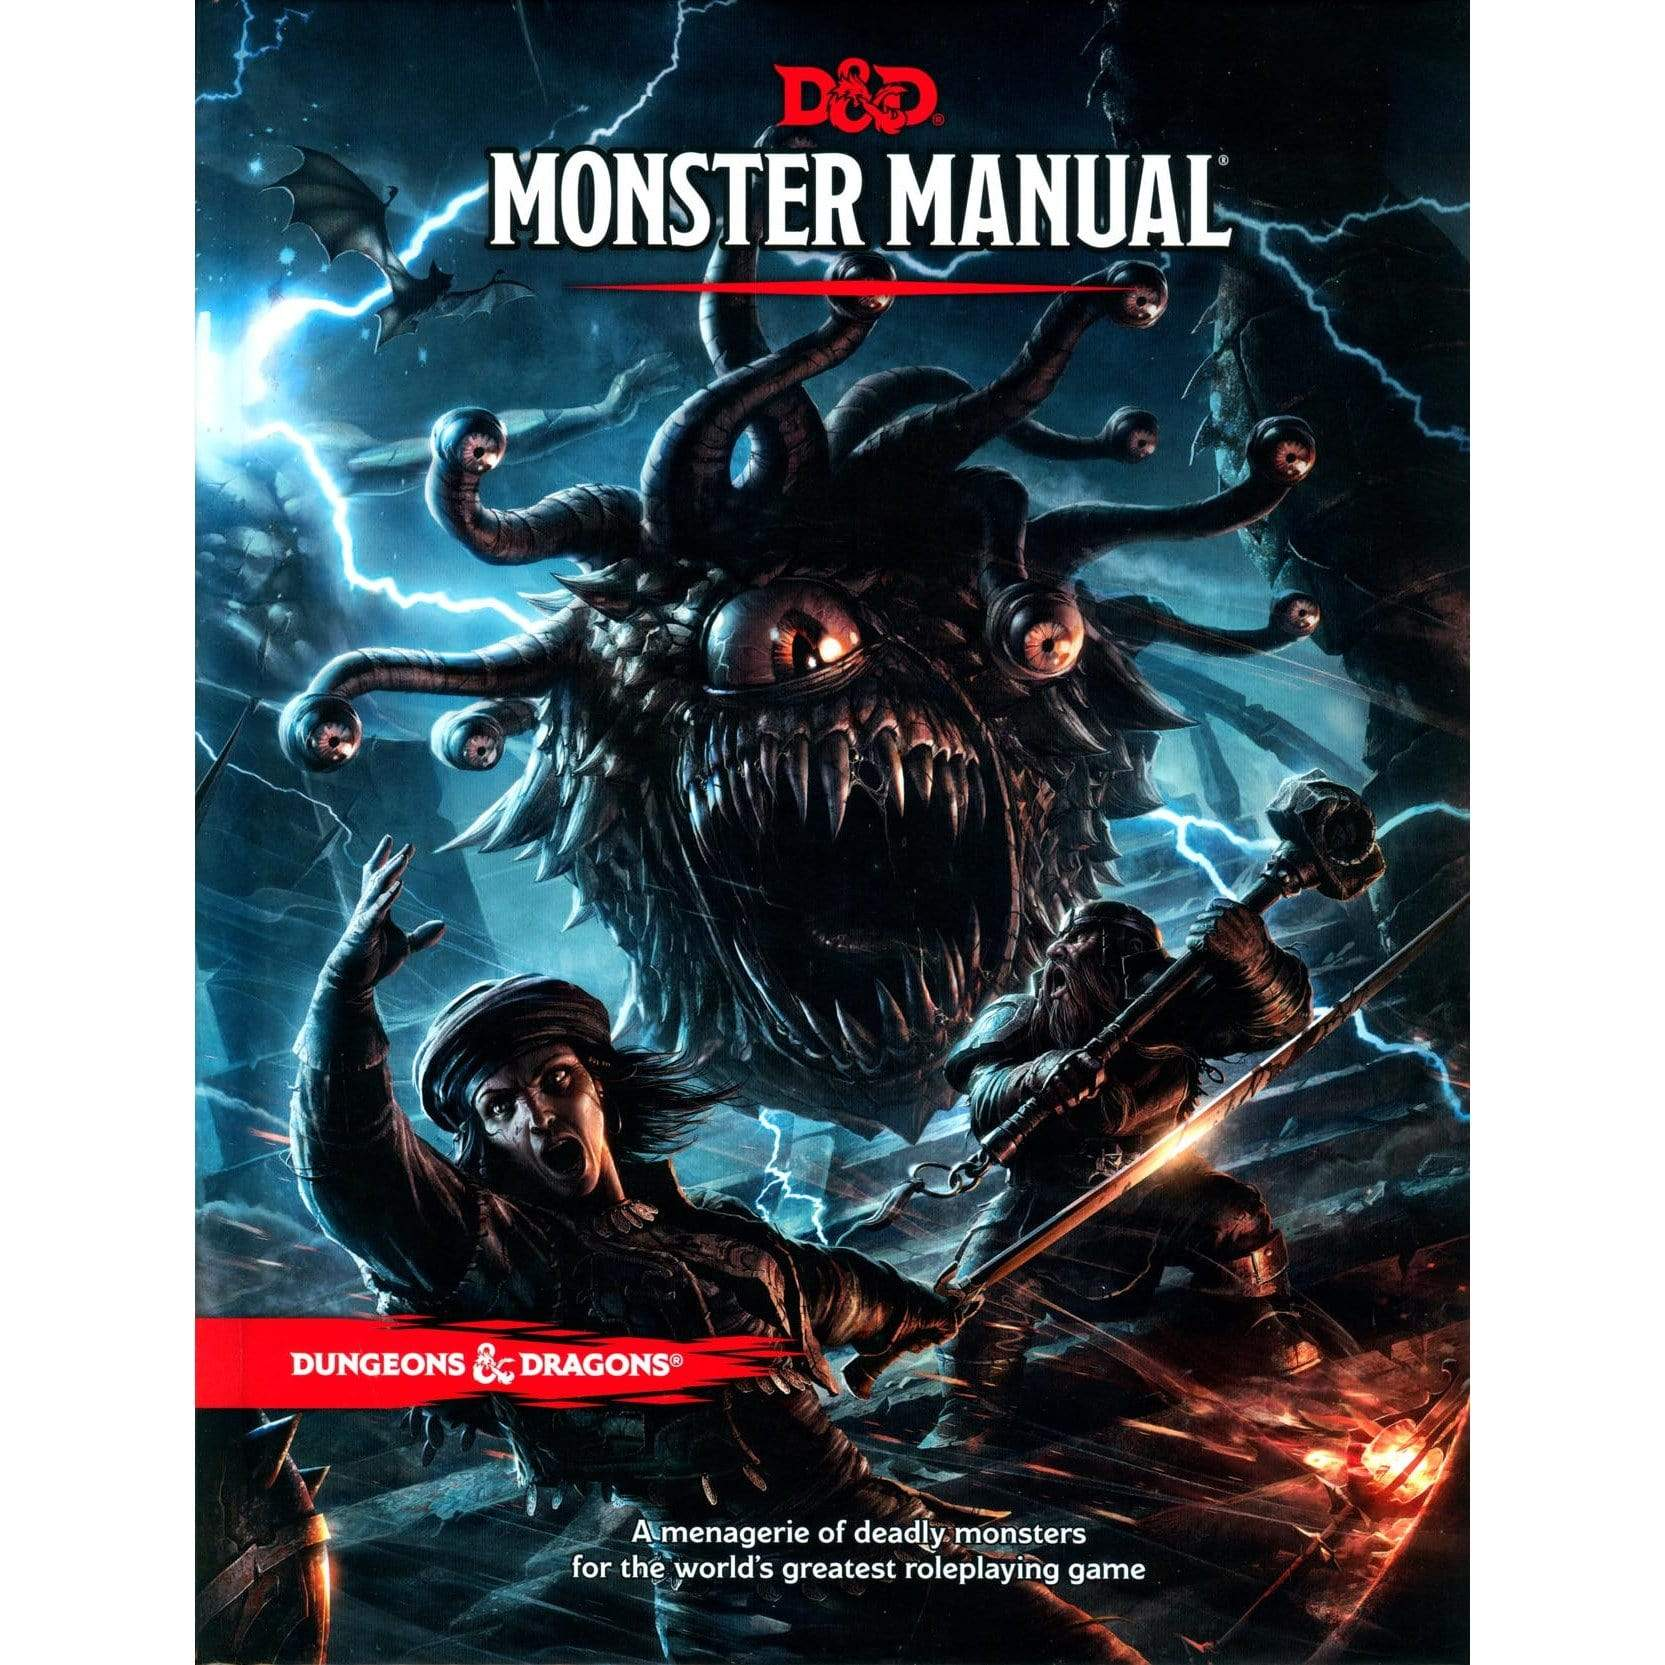 D&D: Monster Manual 5th Edition Wizards of the Coast Board Games